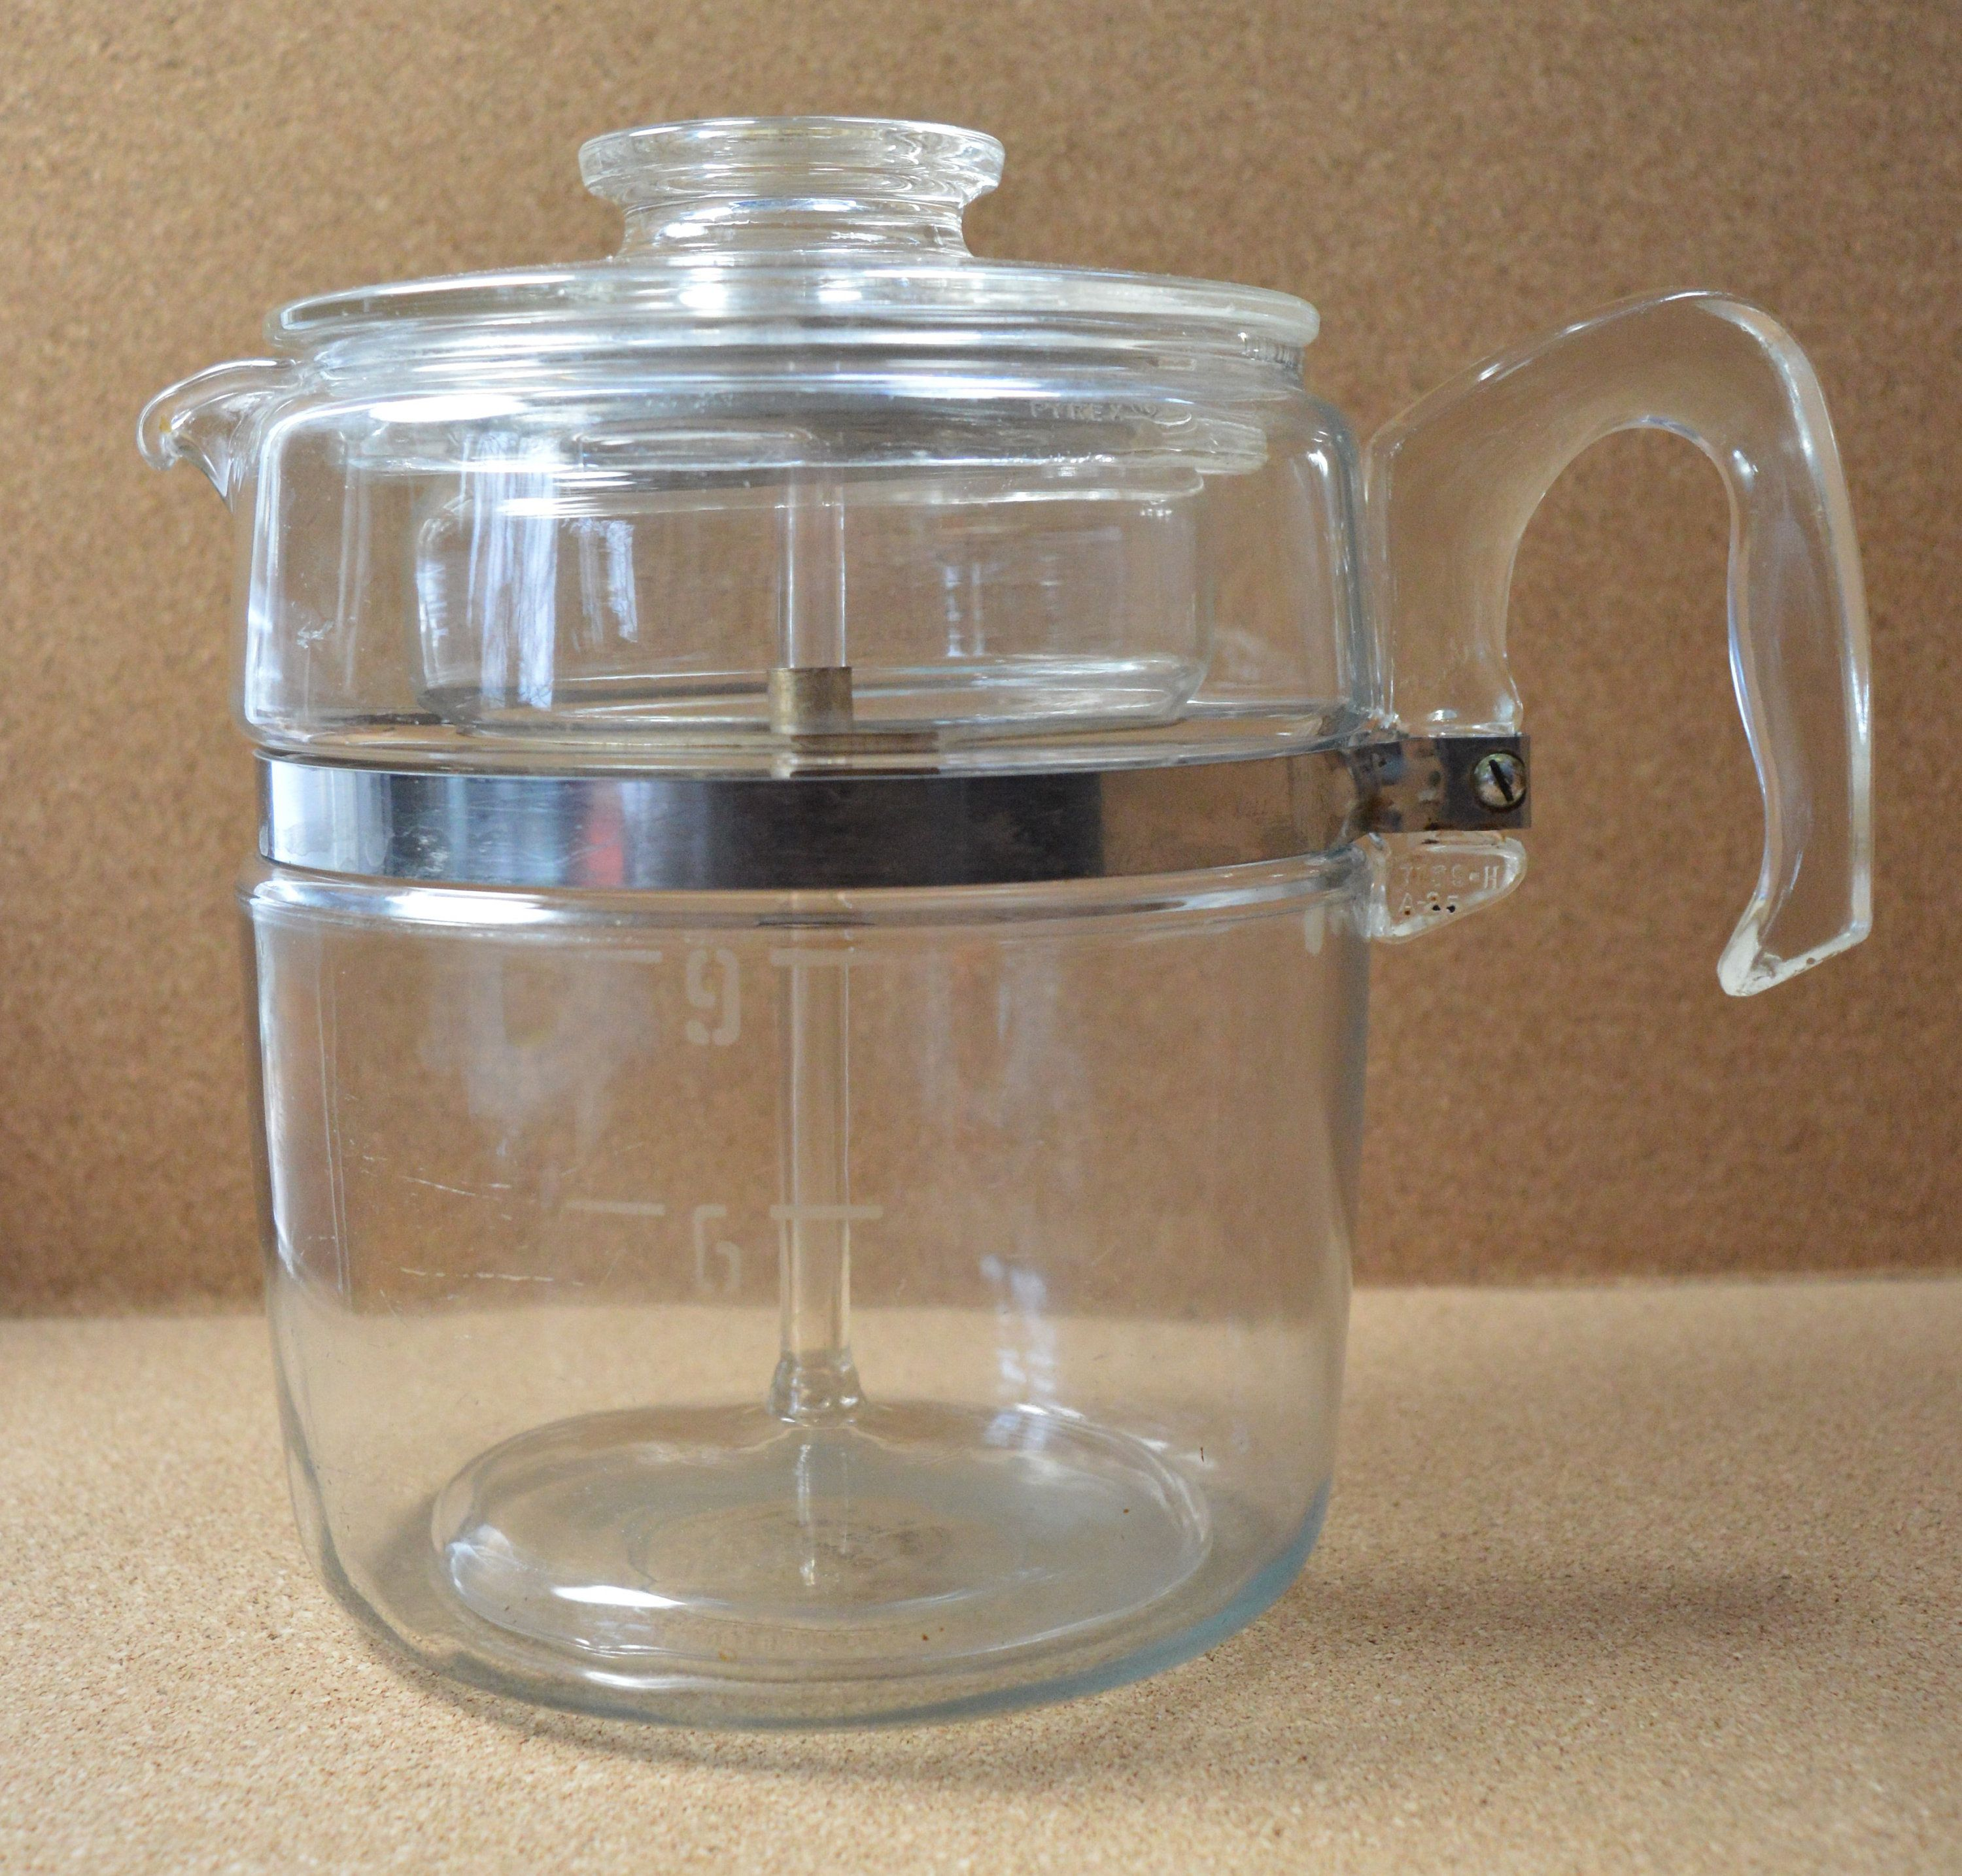 Vintage Flameware 7759 Stove Top 6 to 9 Cup Percolator Mid